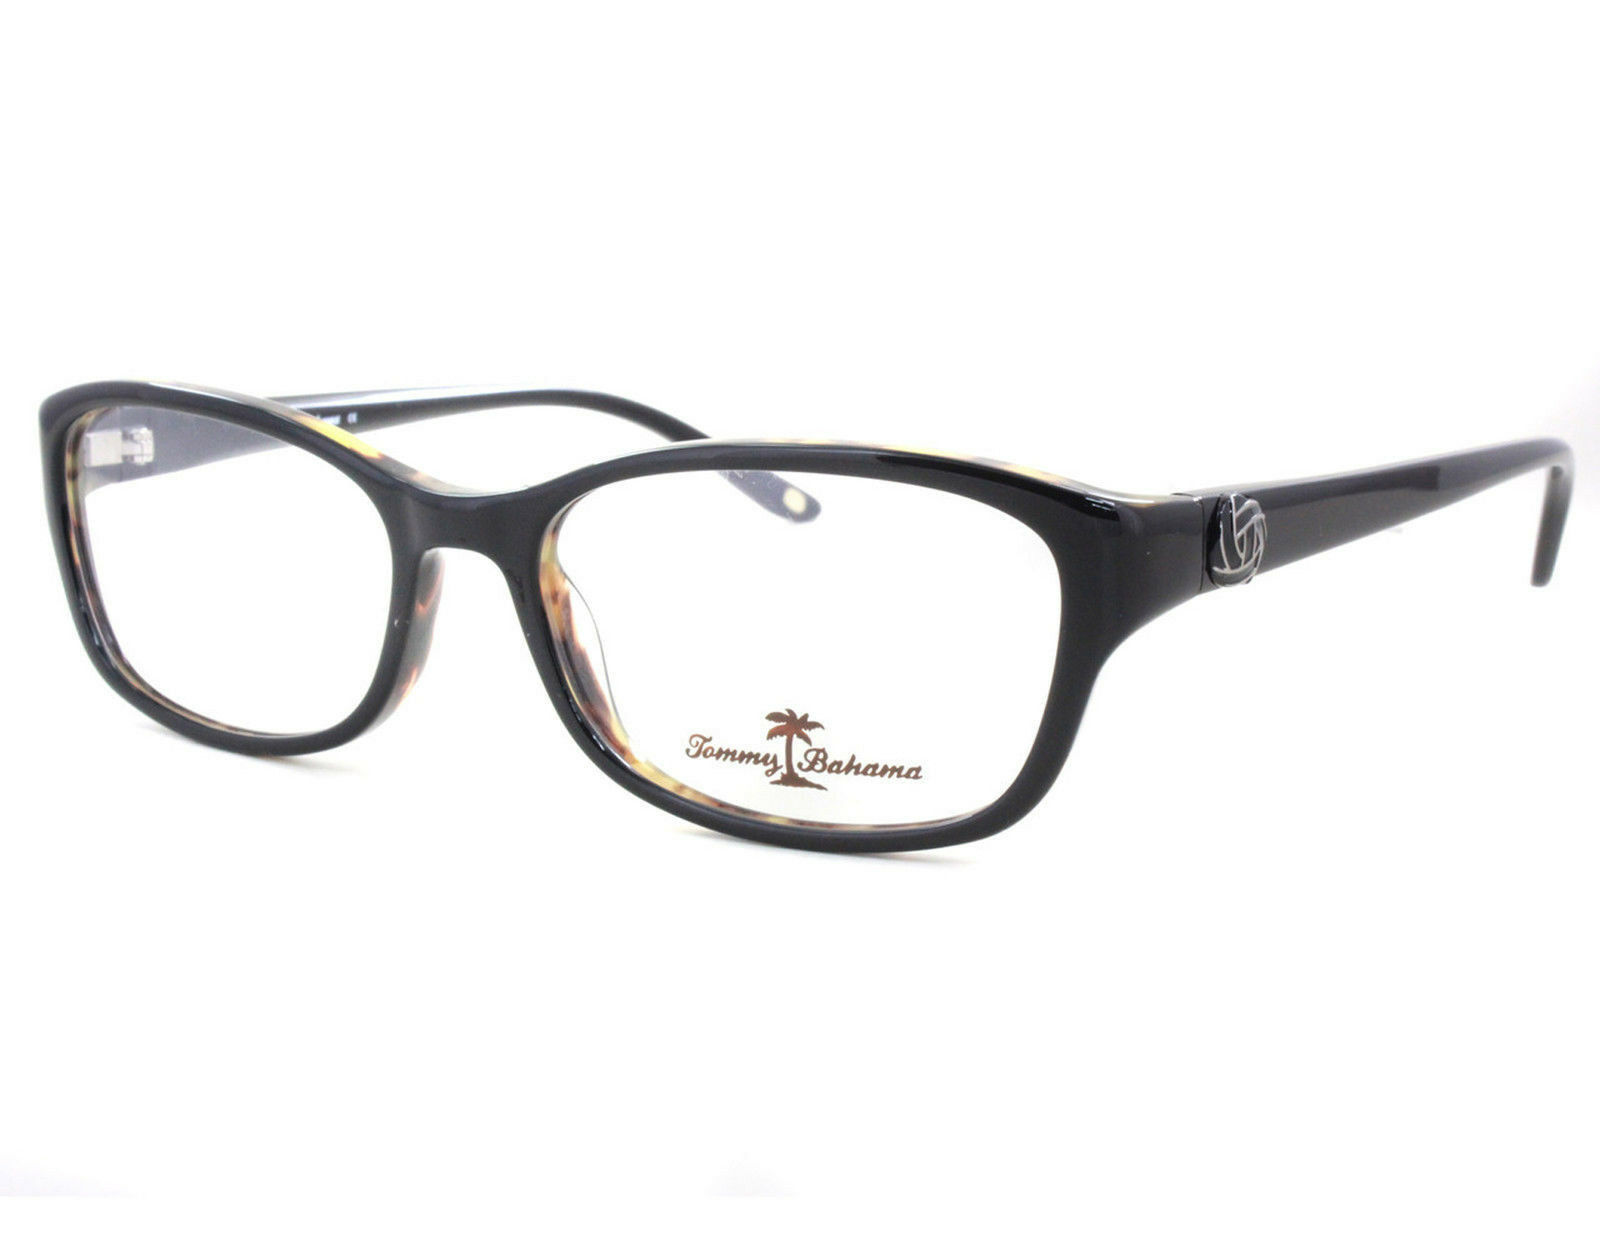 Tommy Bahama Tb5036 226 53mm Black Tortoise Optical Eyeglasses ...